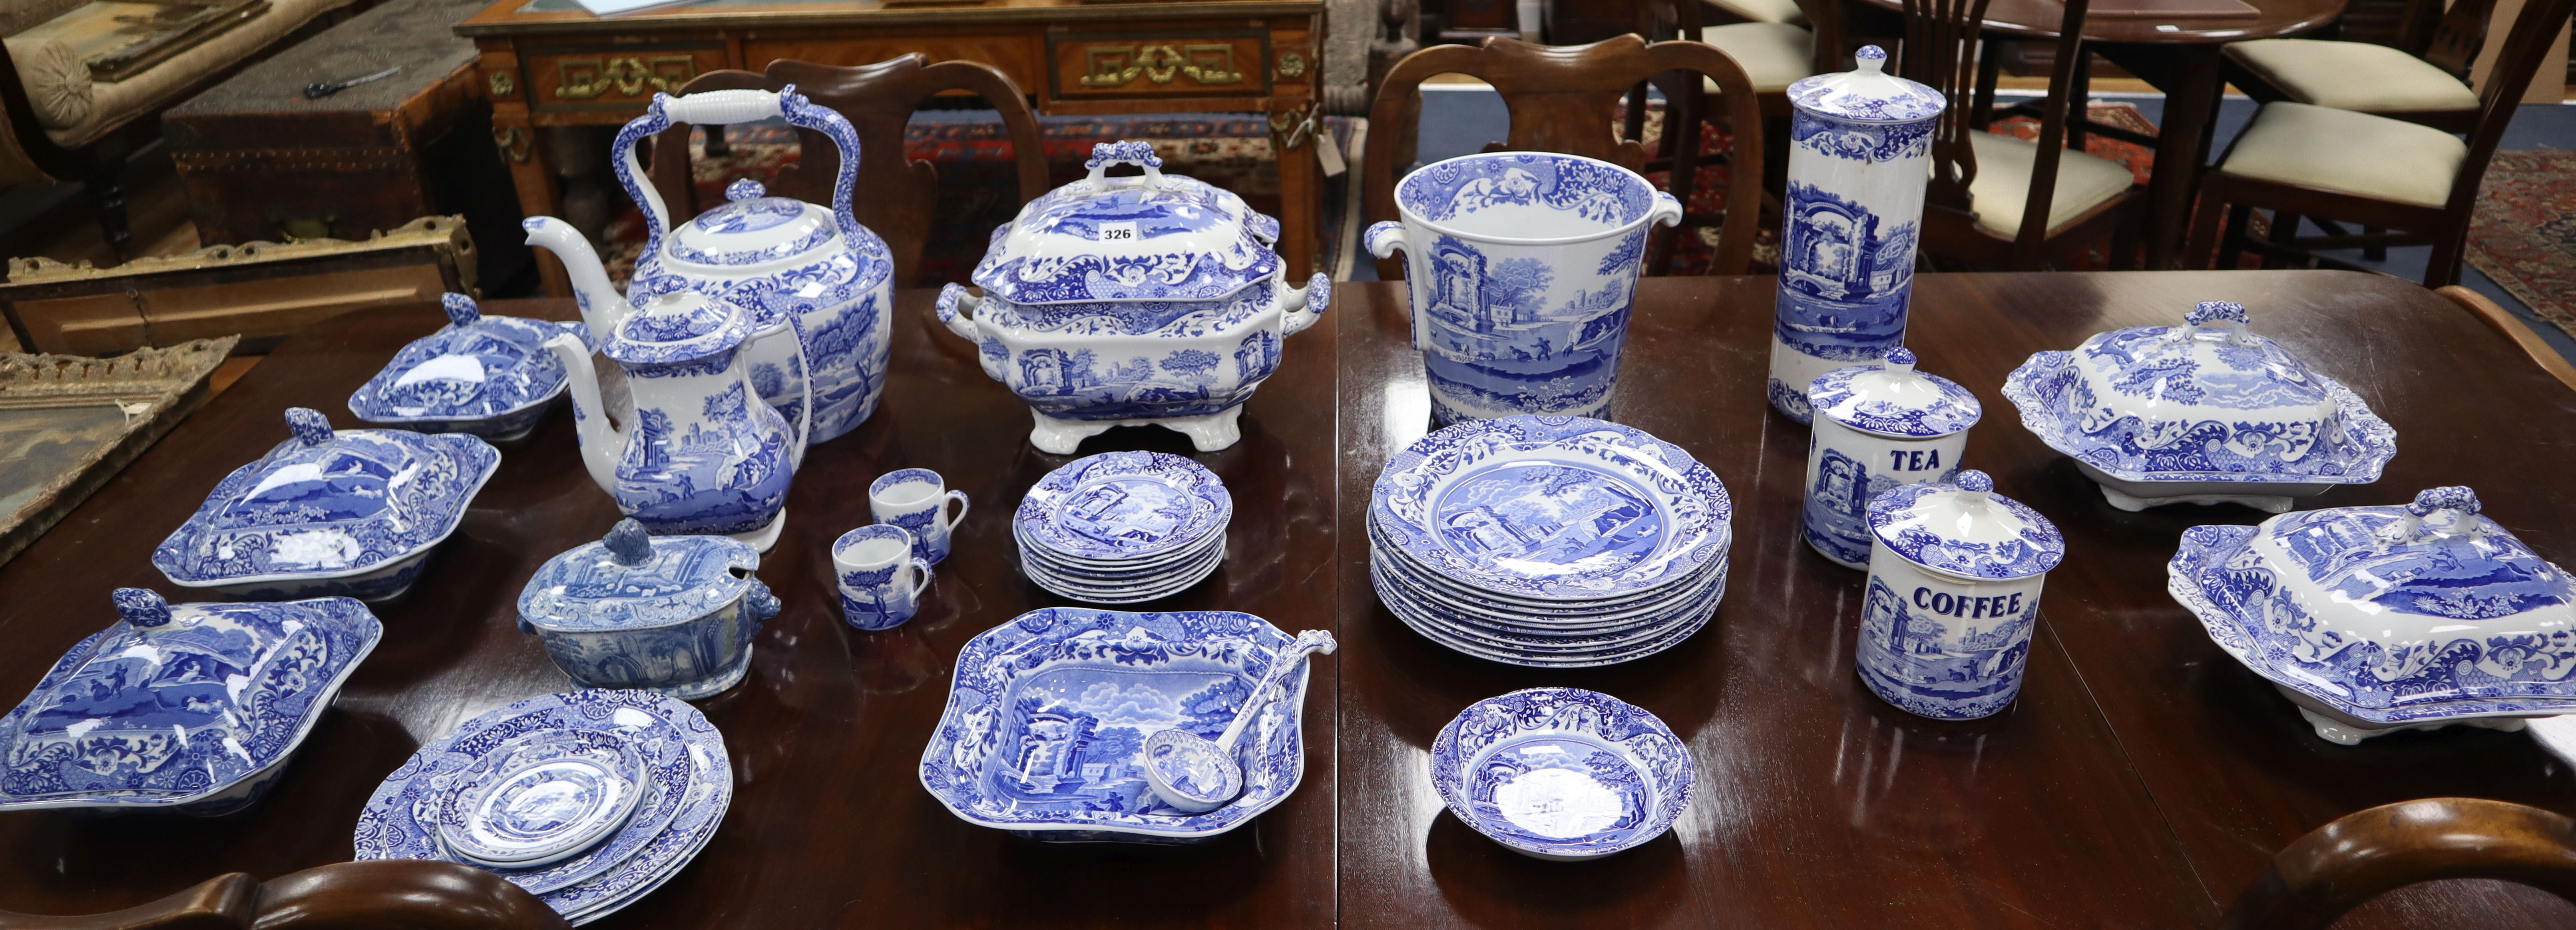 Lot 326 - A collection of Spode Italian blue and white dinner ware